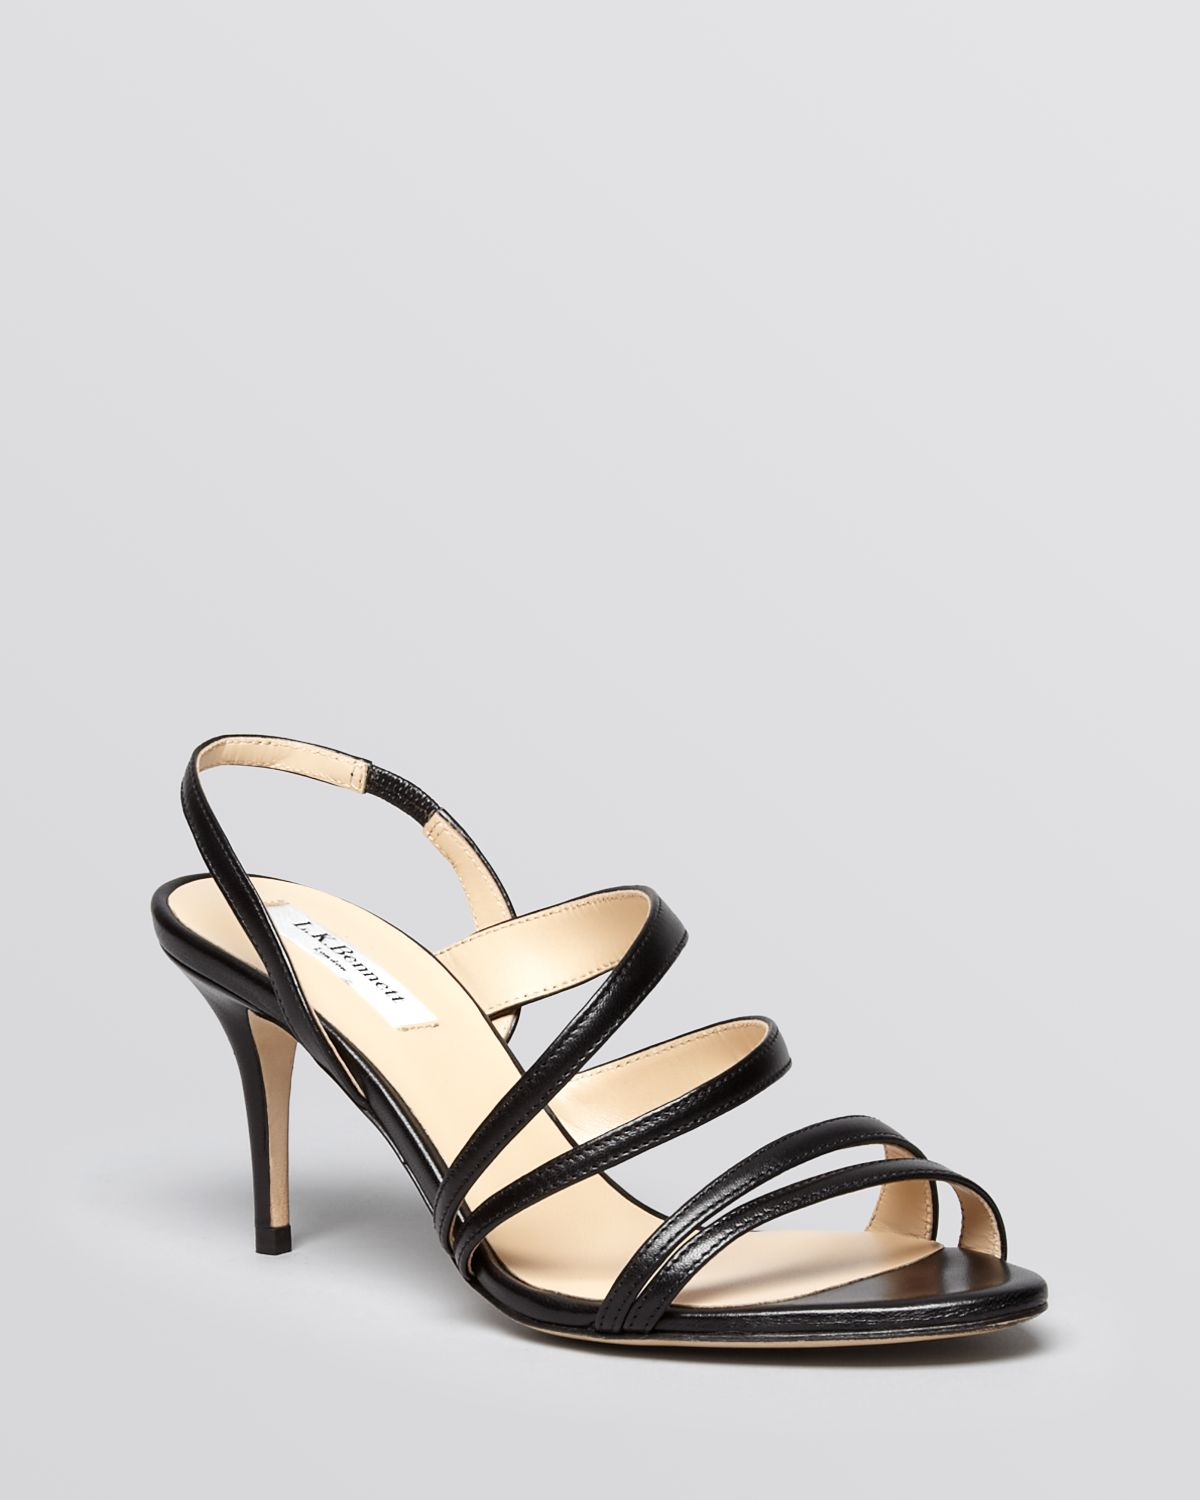 47c1ed41f85 Lyst - L.k.bennett Sandals - Addie Strappy Mid Heel in Black